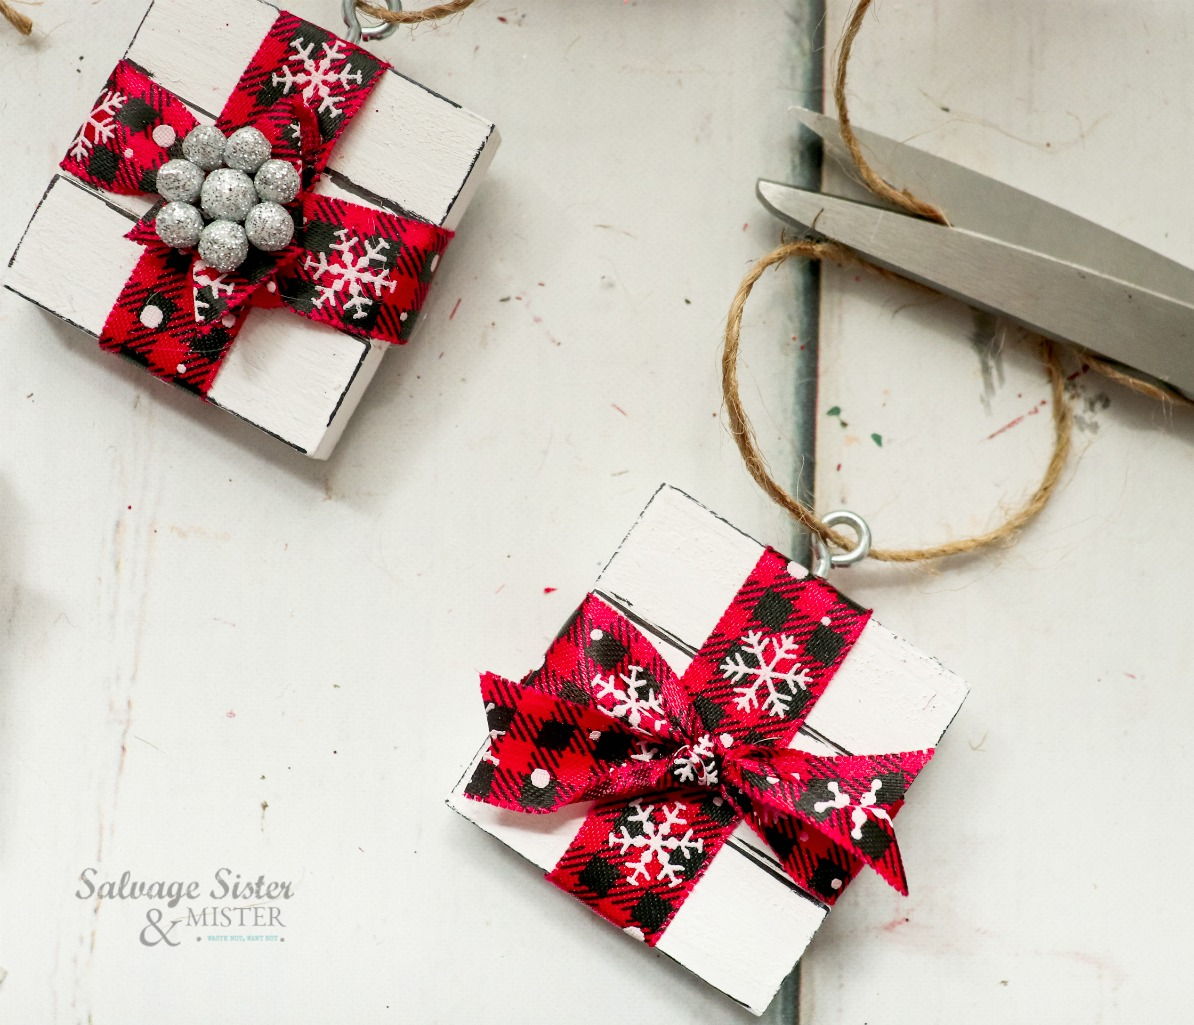 Making Jenga present ornaments - fun holiday craft on salvagesisterandmister.com